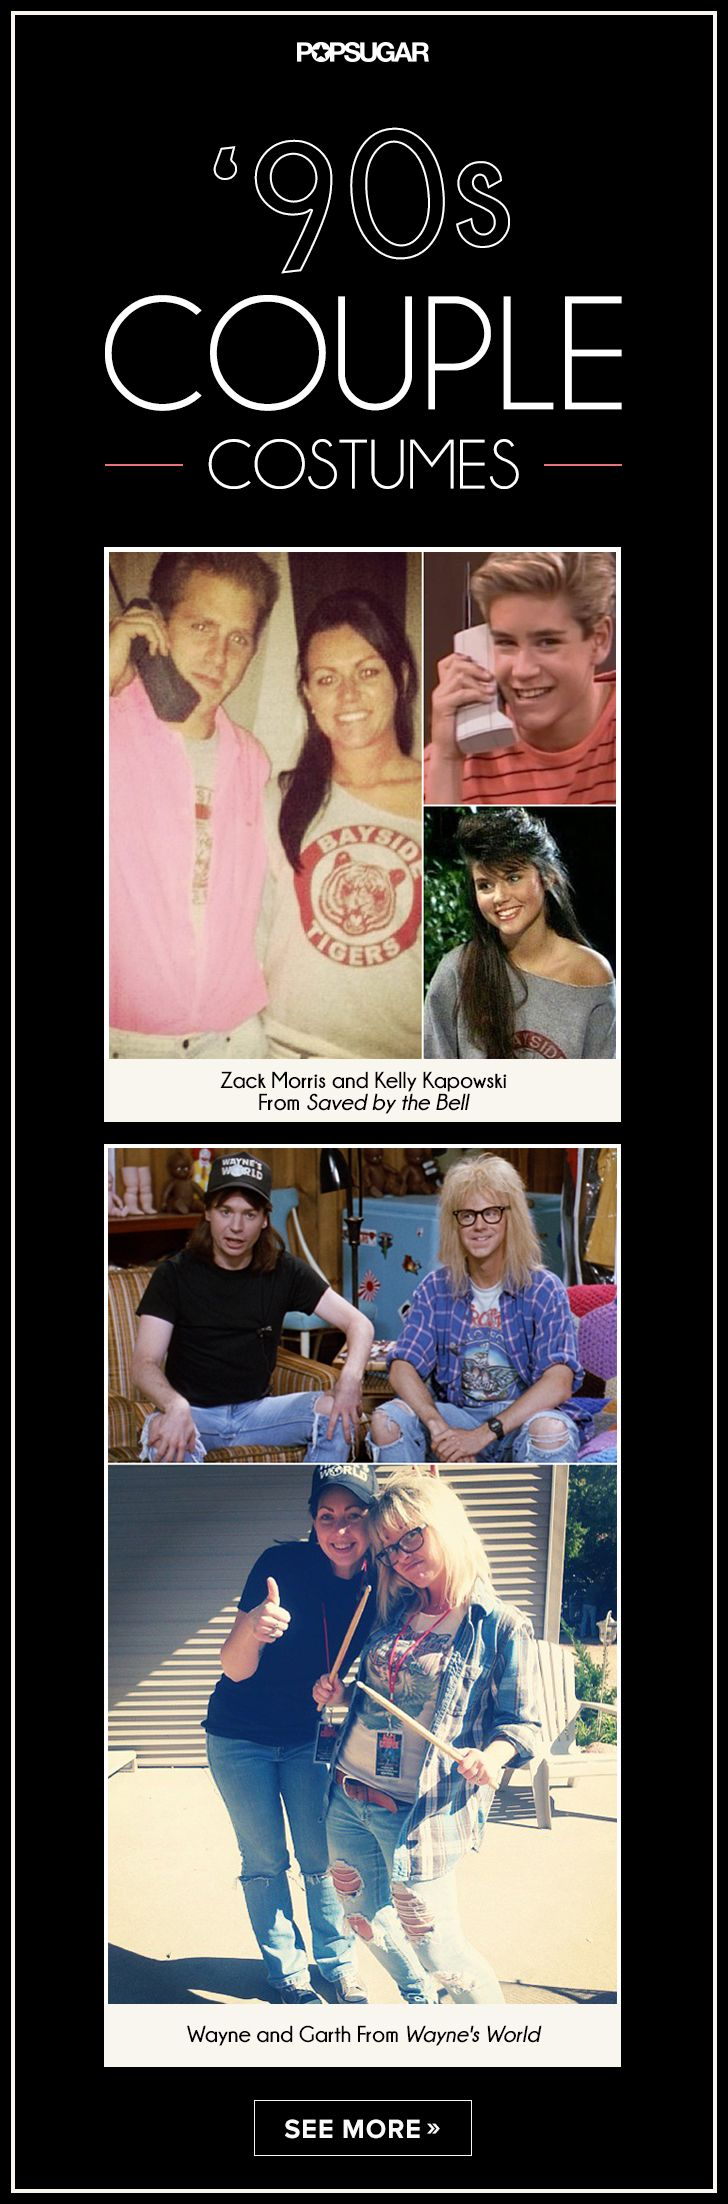 This is great since Dave and I have been the first two!! I'm not sure we'll ever beat our Wayne's World costumes.